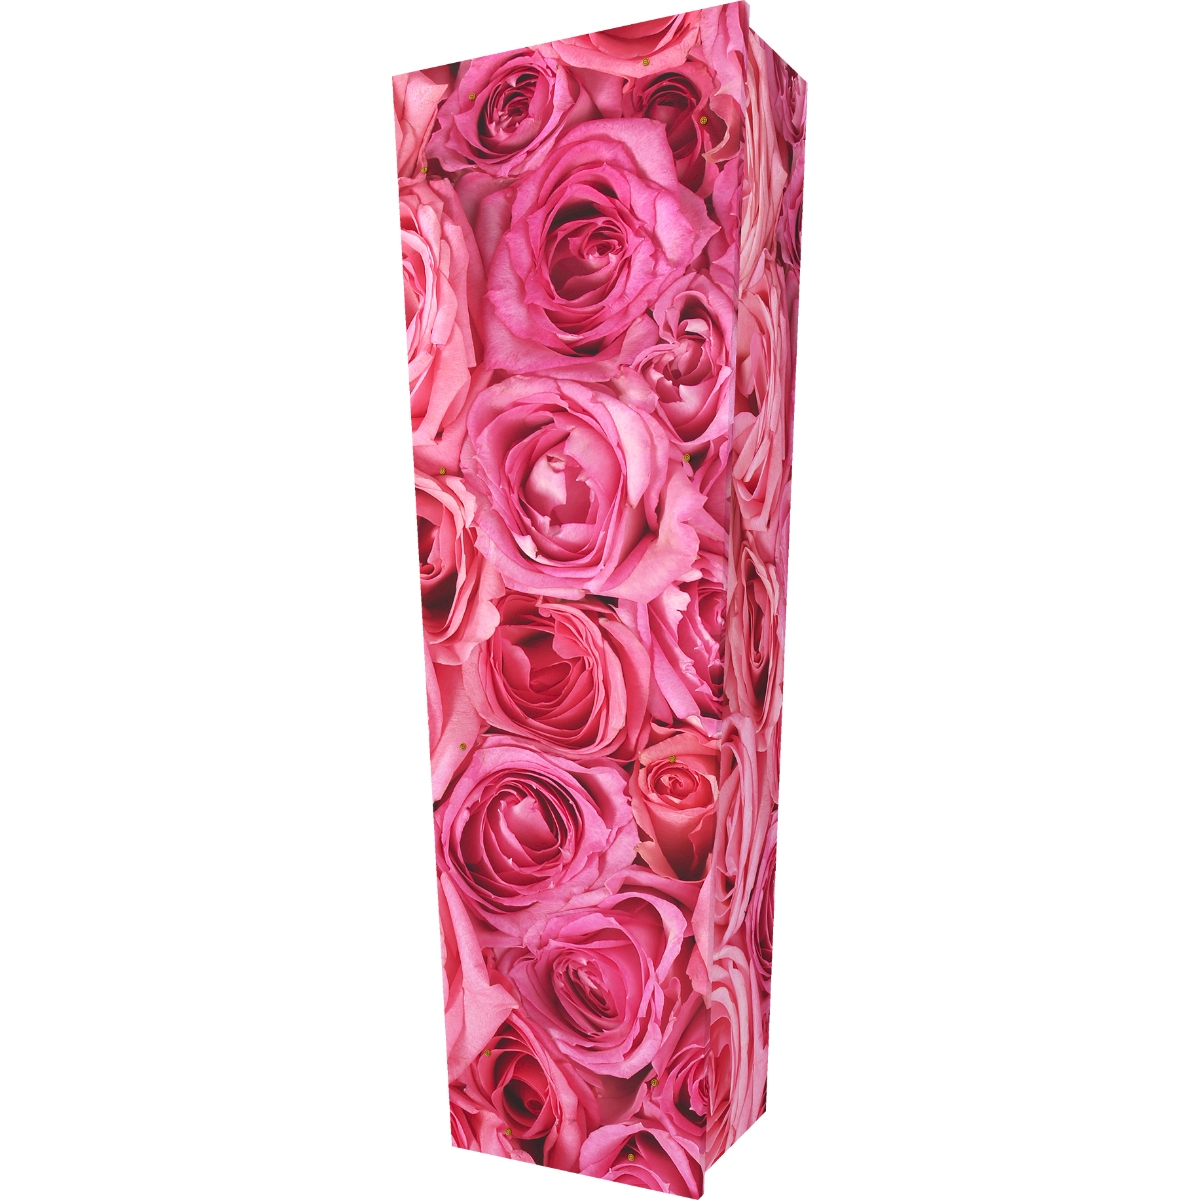 Pink Rose Coffin